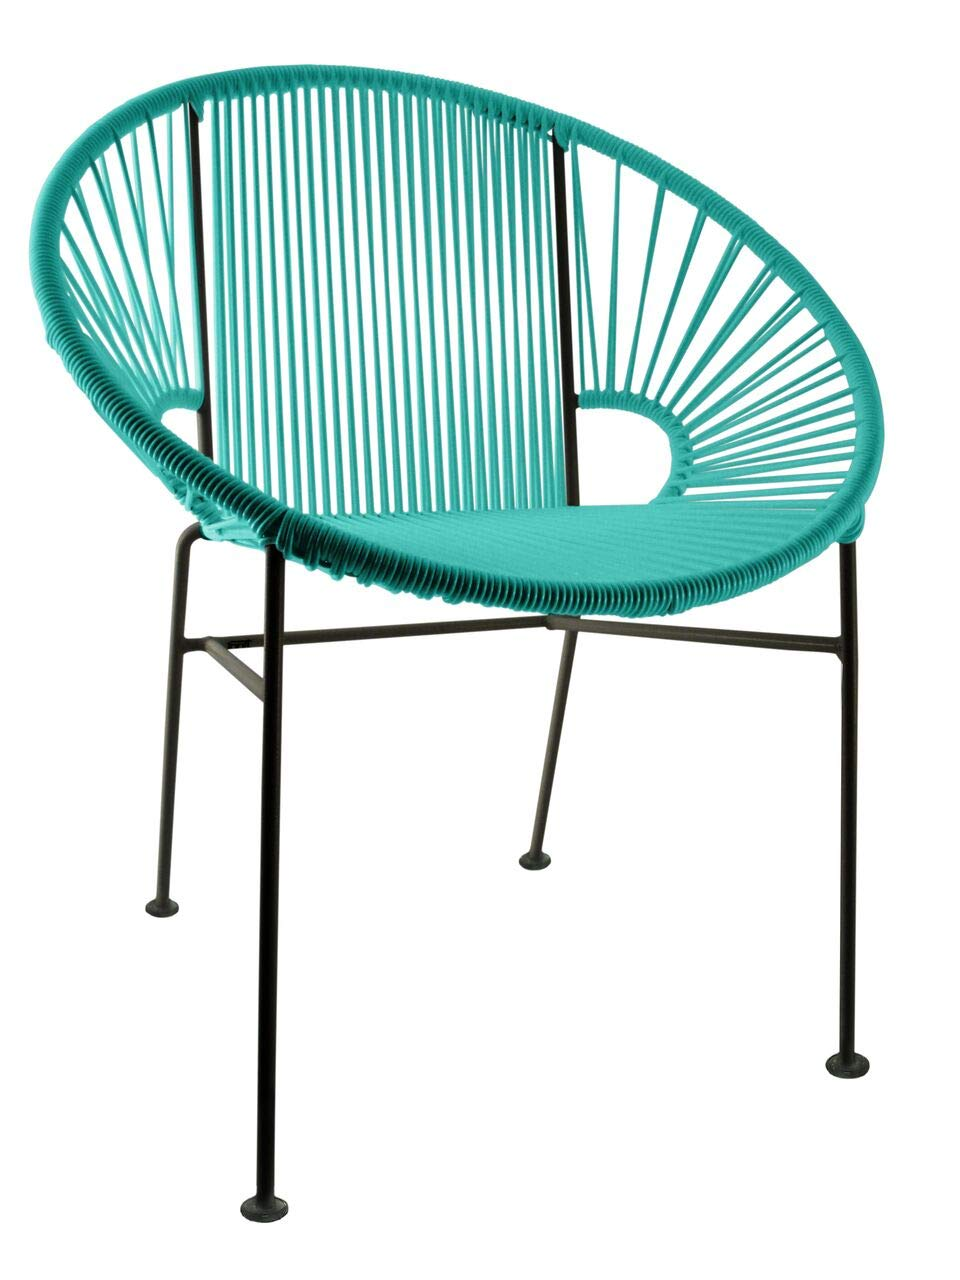 Innit Designs Concha Chair, Turquoise Weave on Black Frame